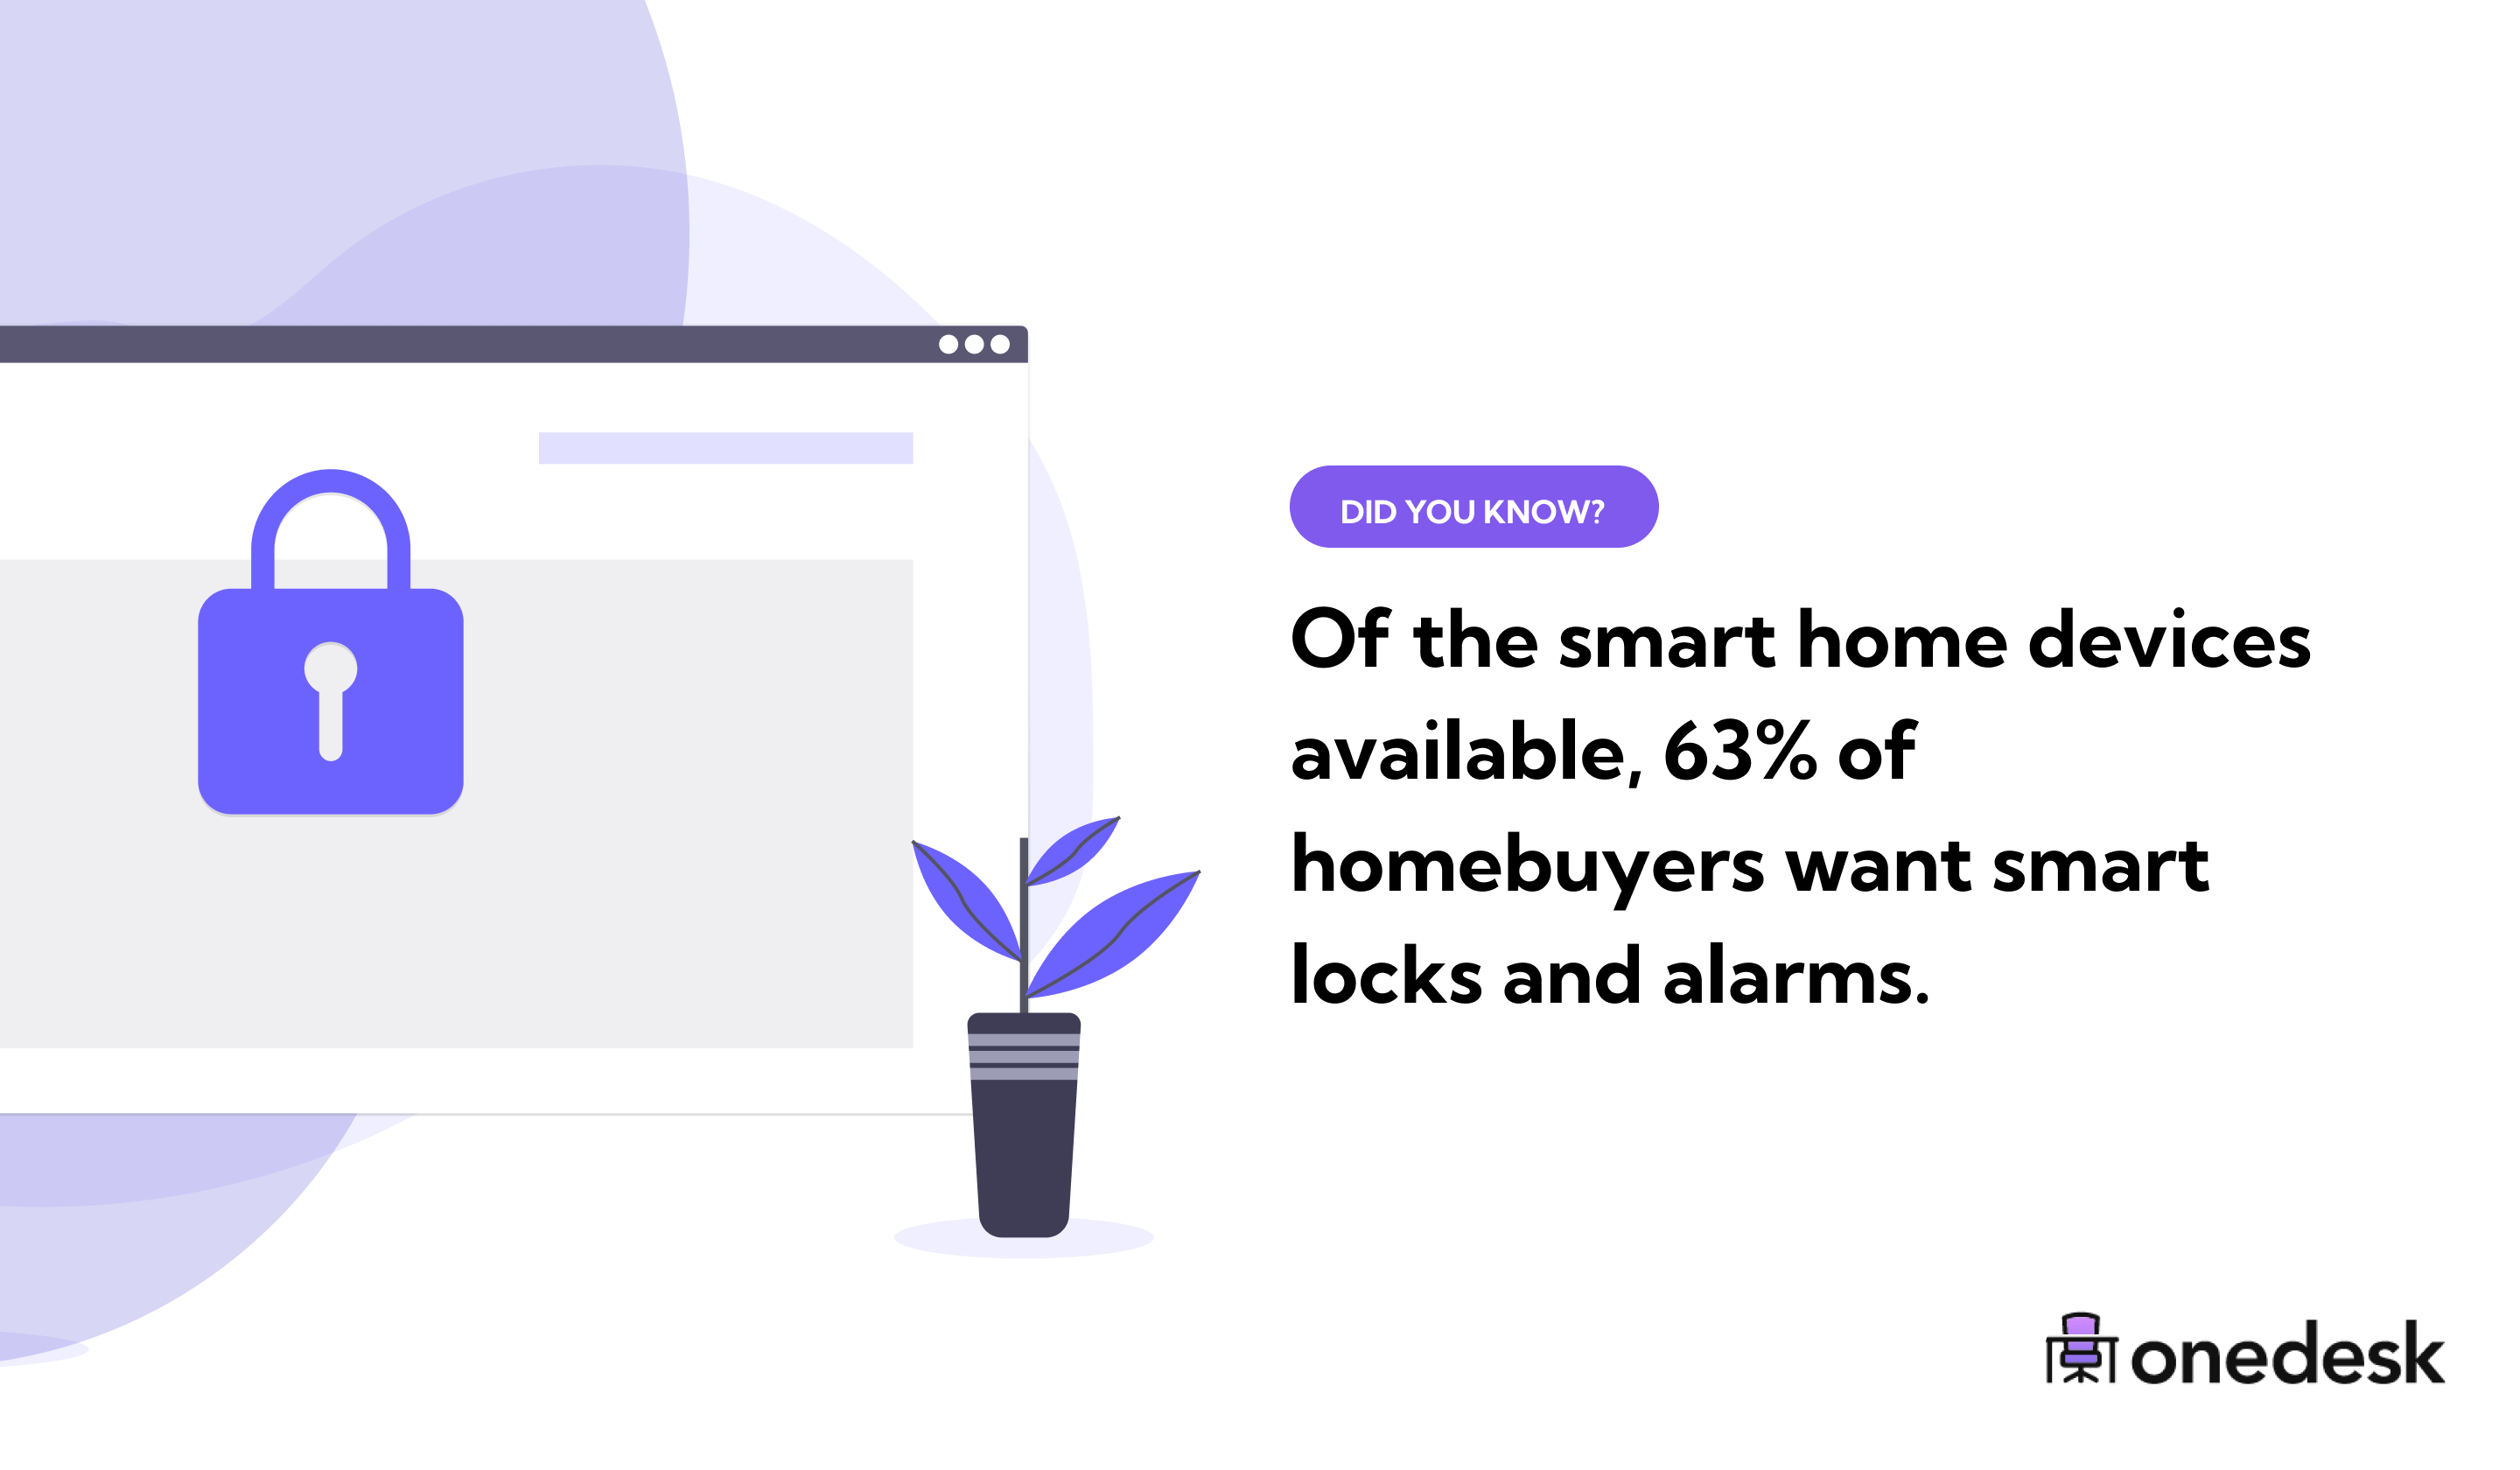 homebuyers want smart locks and alarms